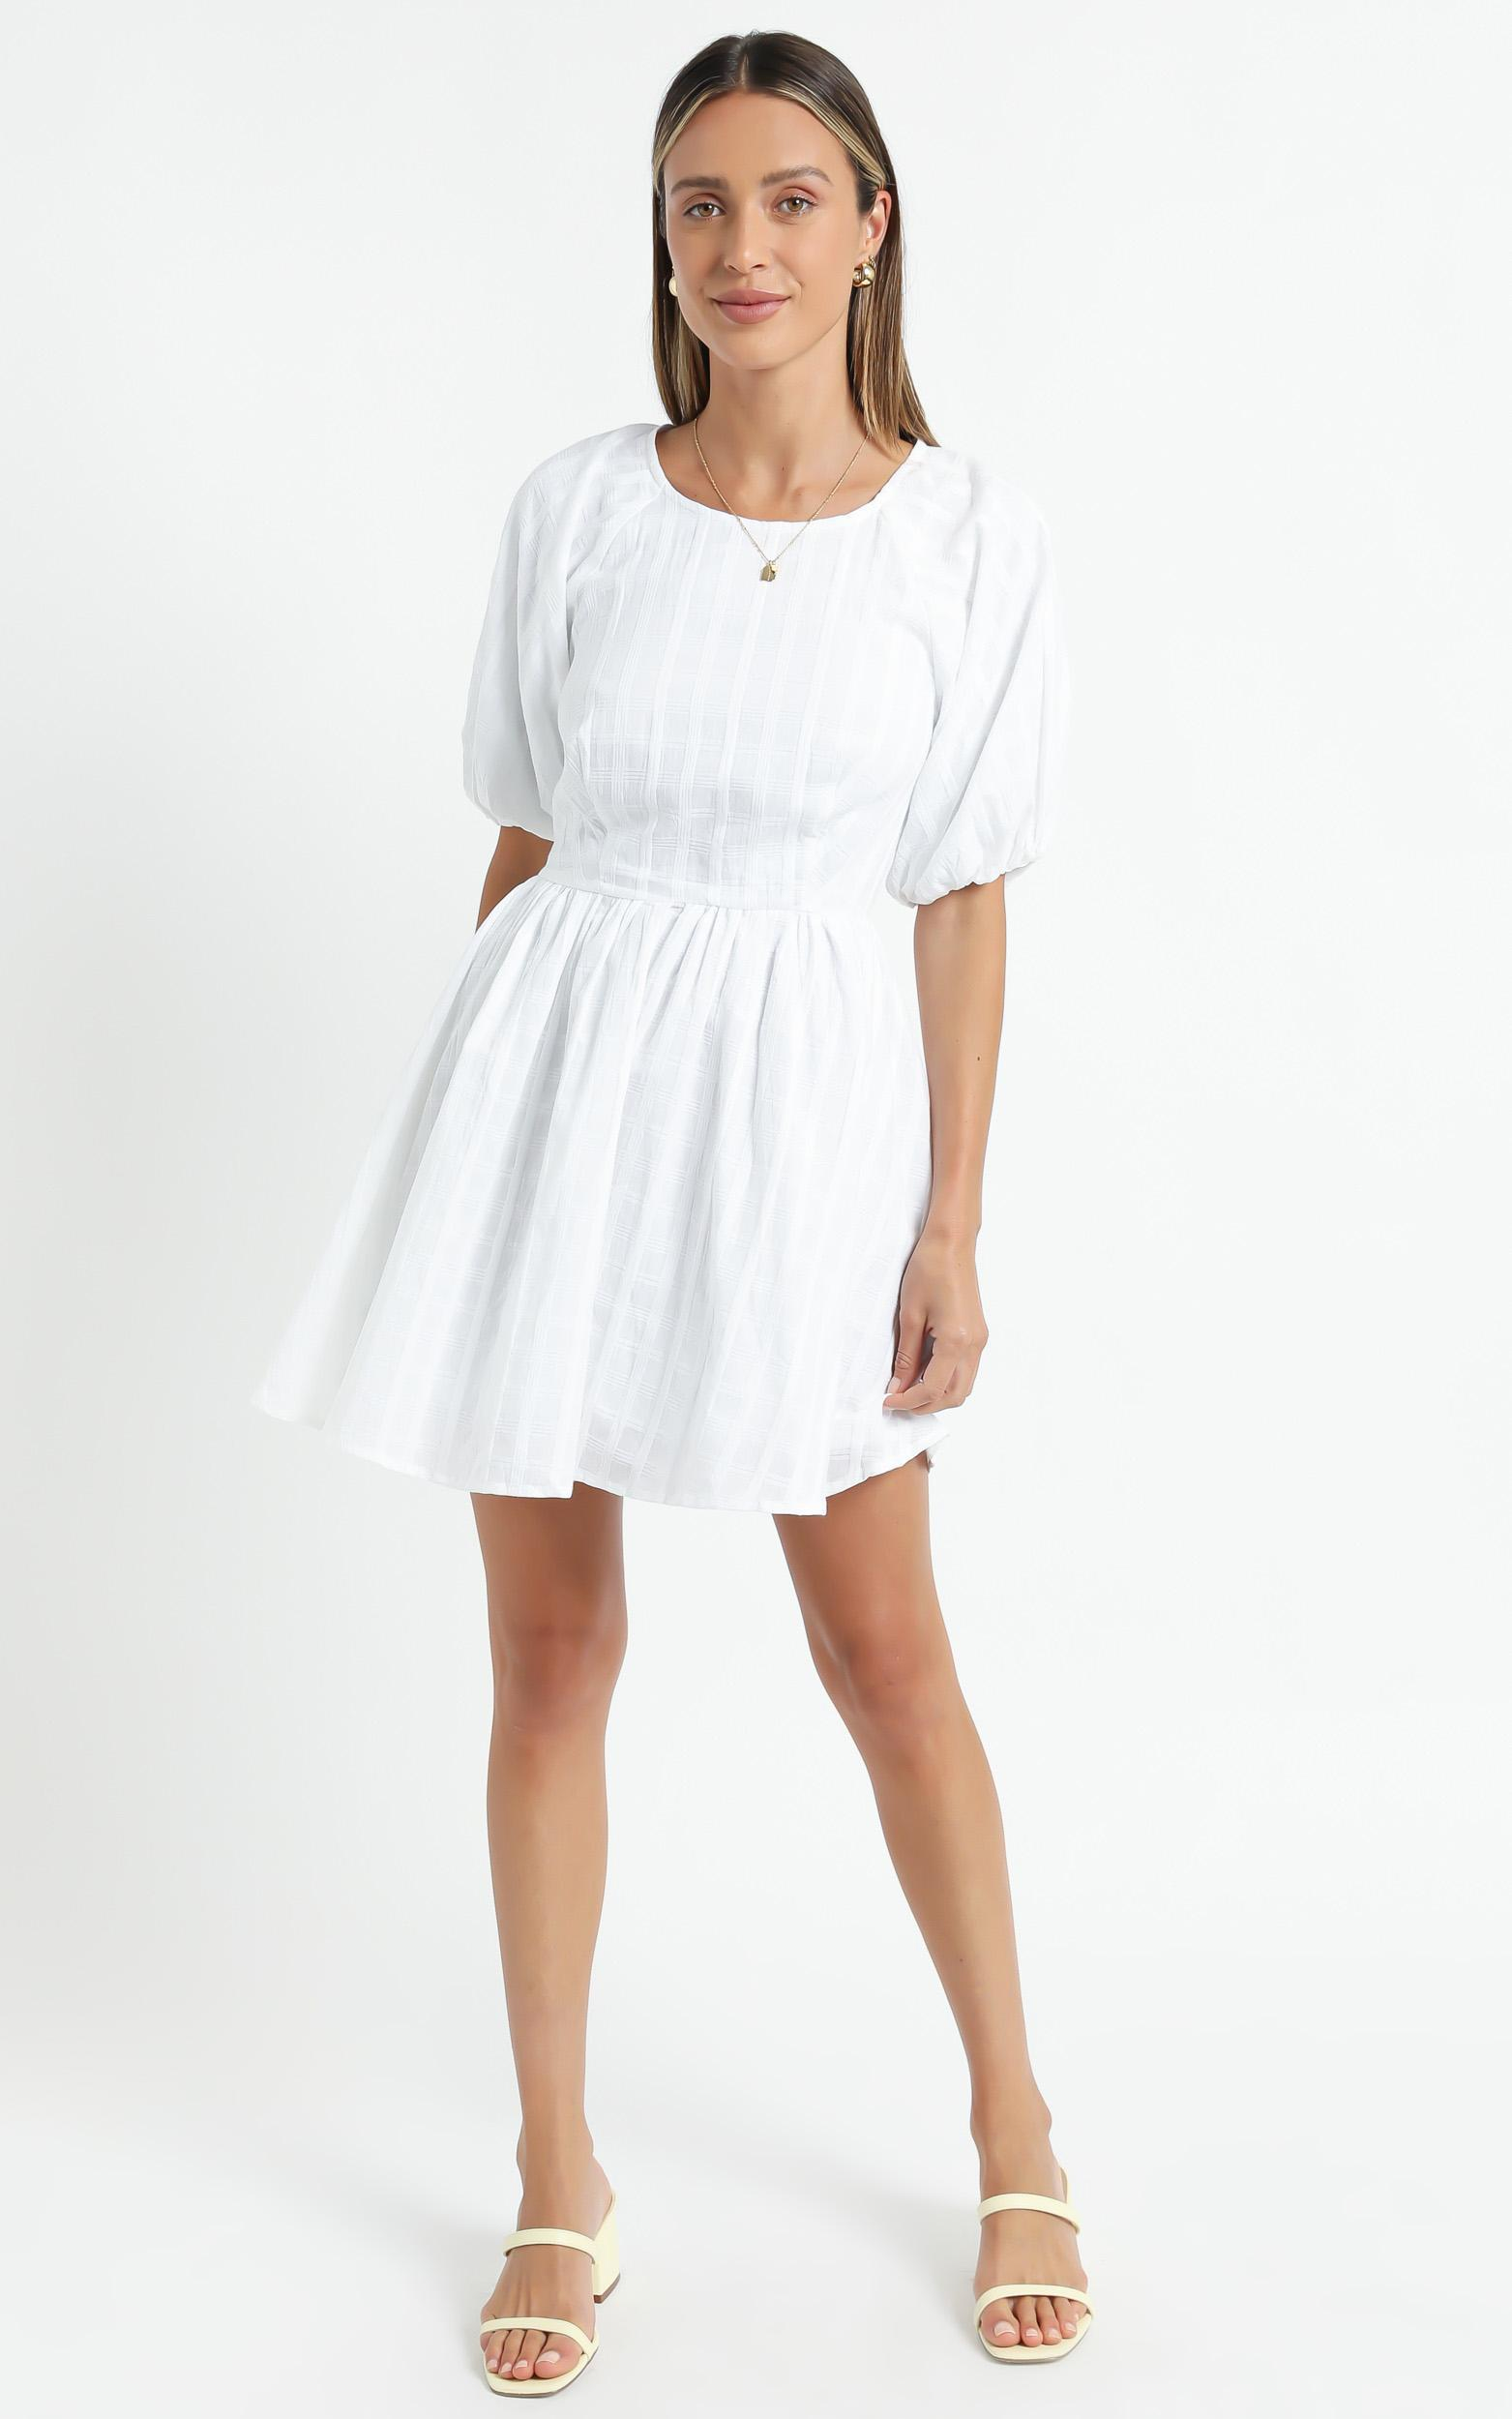 Cherie Dress in White - 6 (XS), White, hi-res image number null